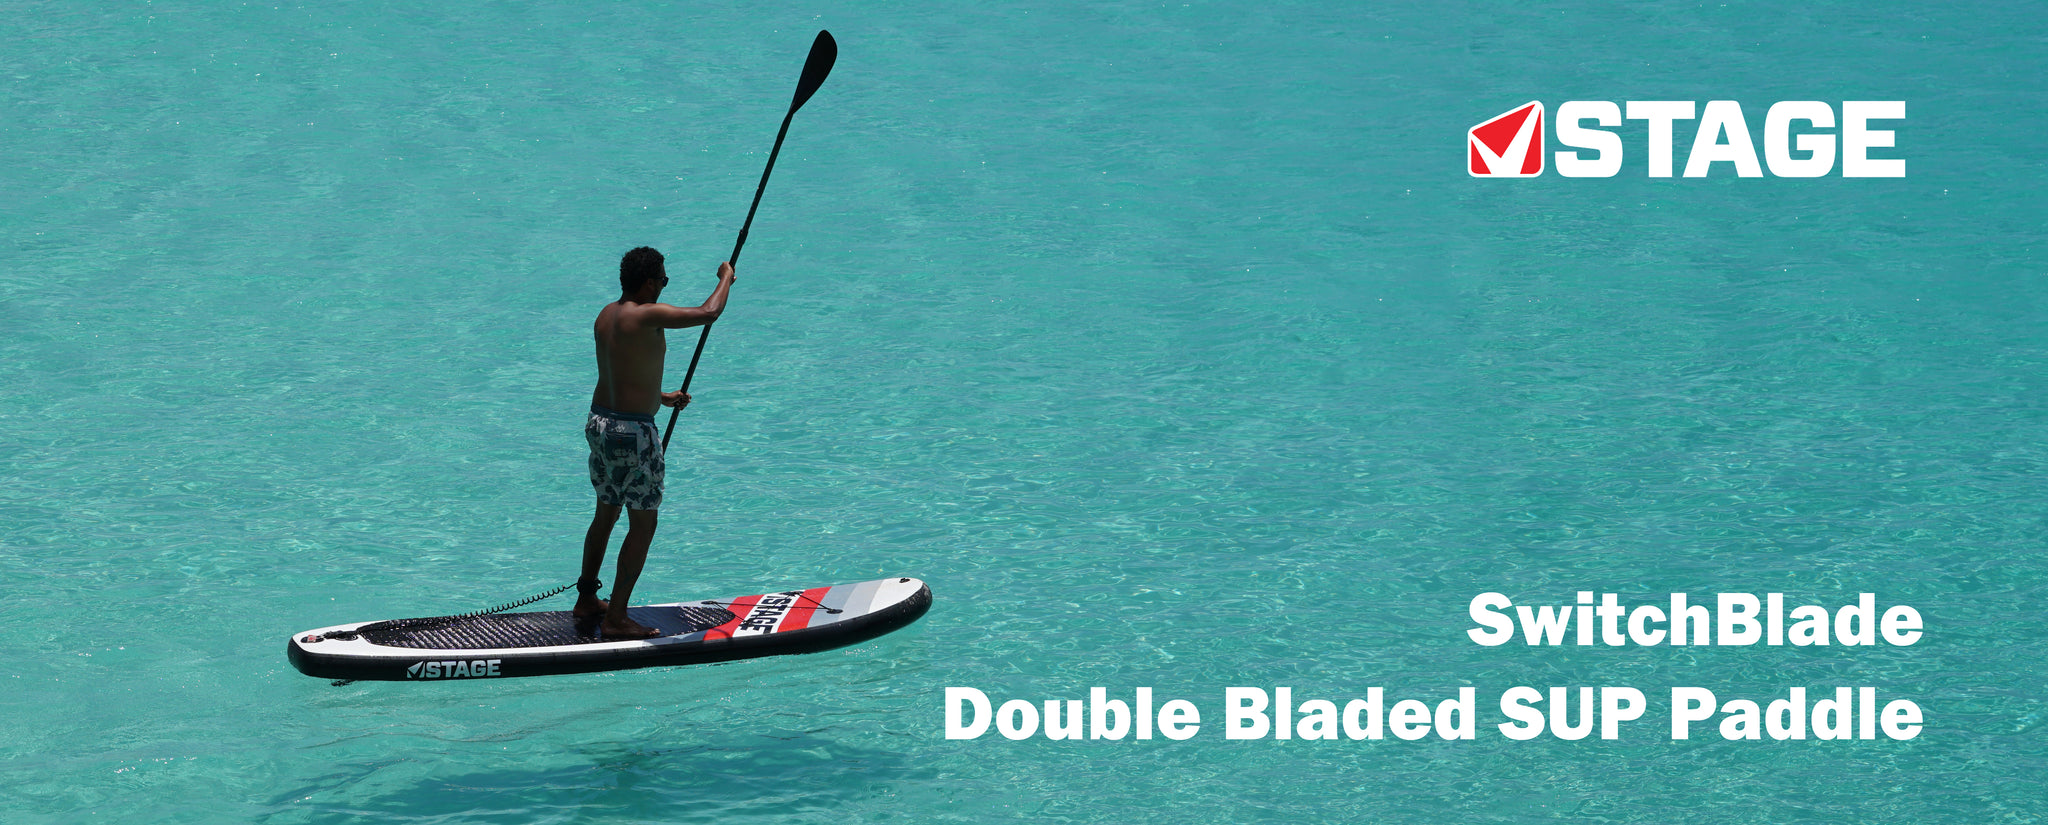 2-sided SUP Paddle